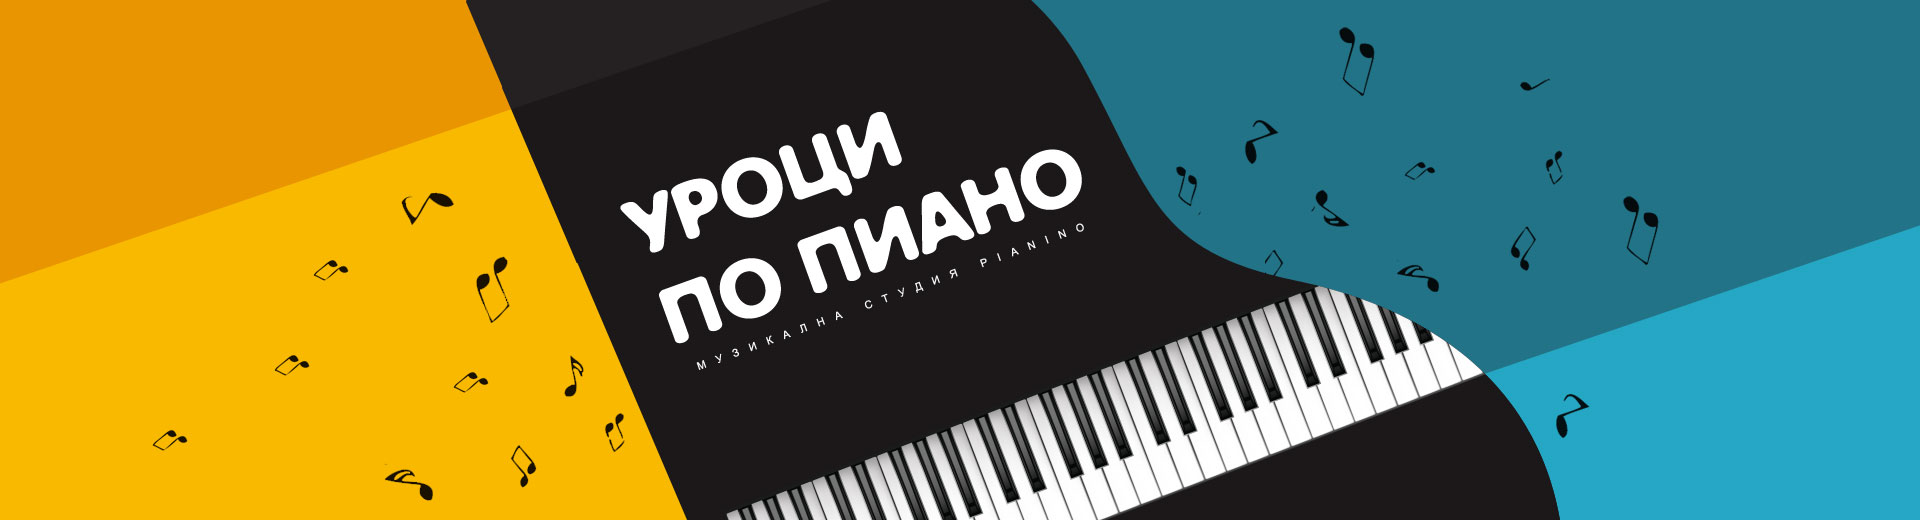 Music-lesson_piano1